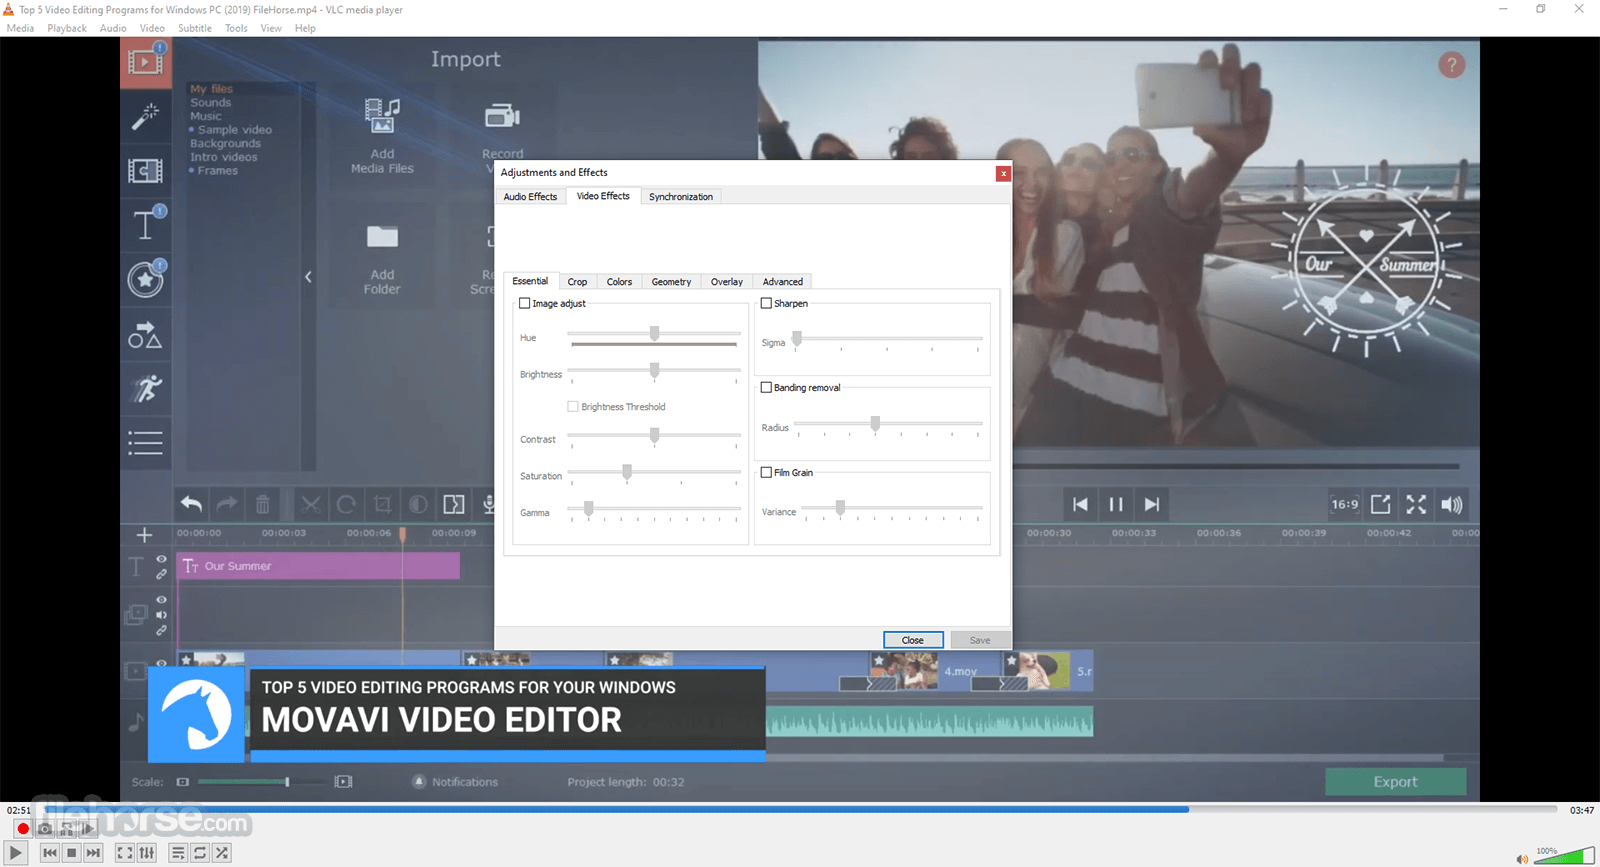 VLC Media Player 2.2.2 (32-bit) Screenshot 4